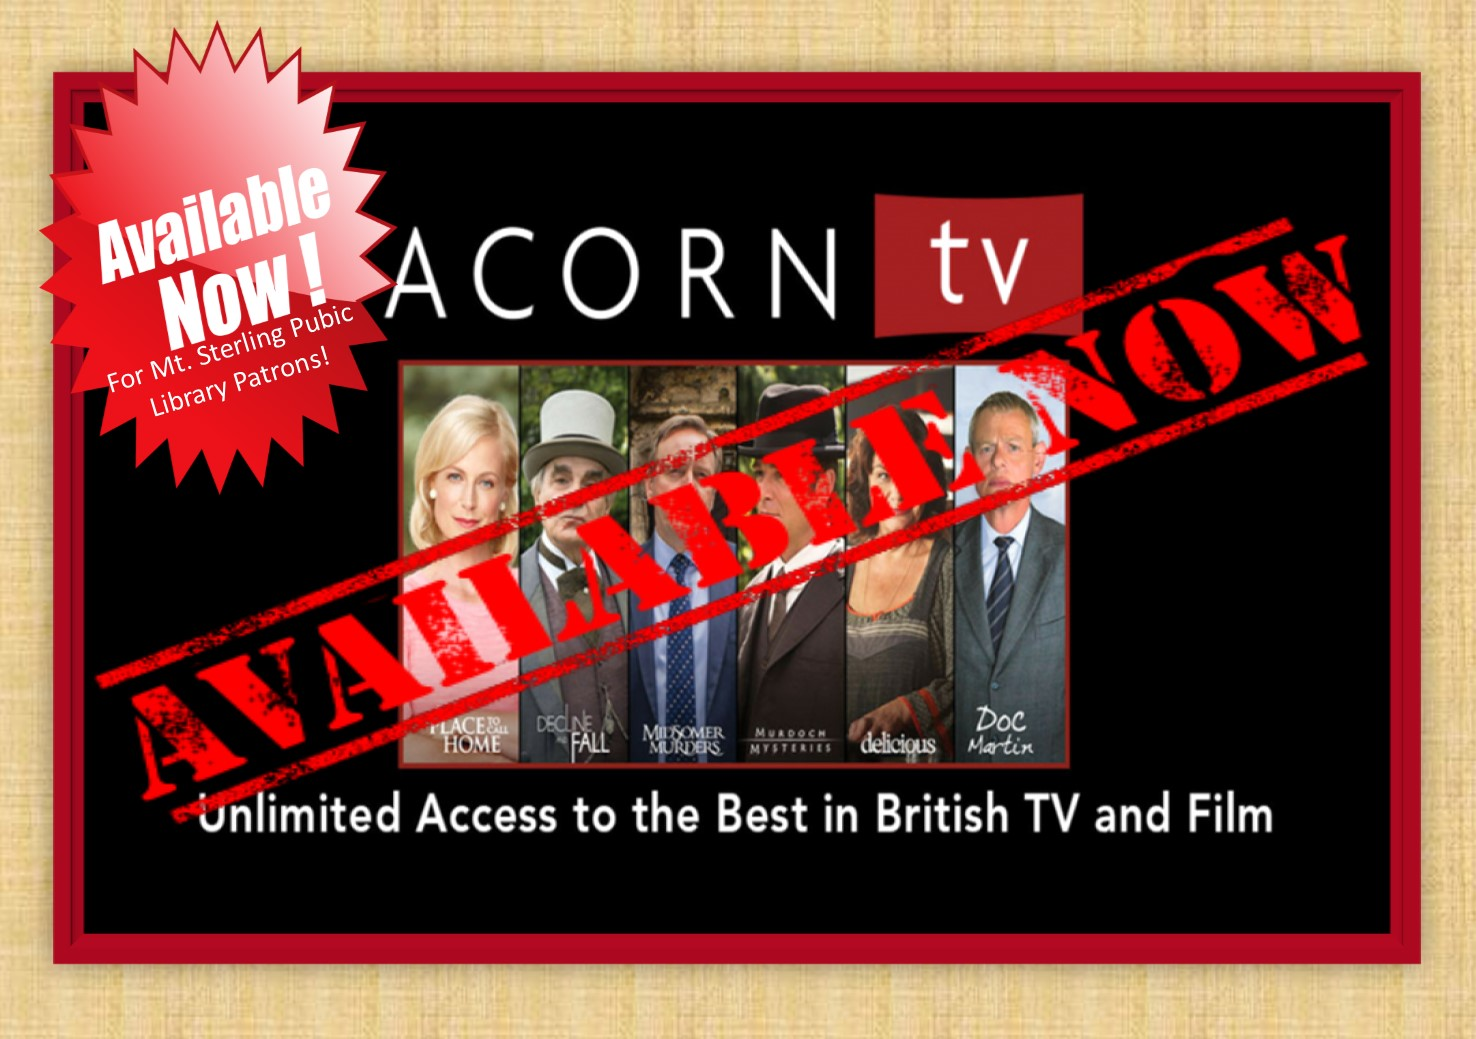 Be sure to sign up for ACORN tv for FREE through our website!